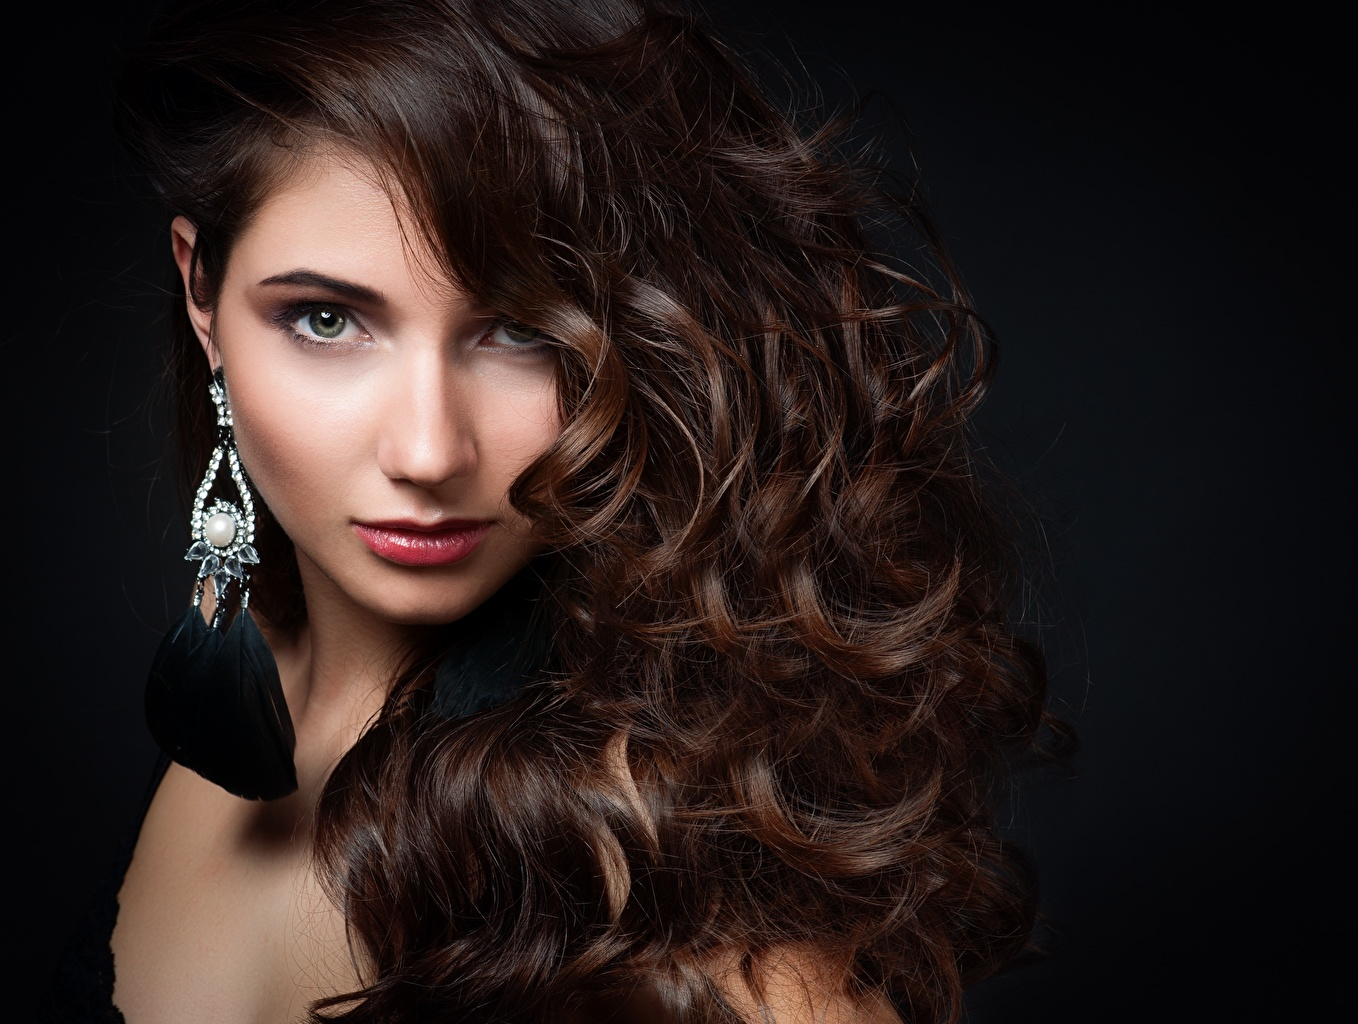 Image Brown haired Modelling Makeup Hairstyle Hair Girls Glance Model hairdo haircut hairstyles female young woman Staring